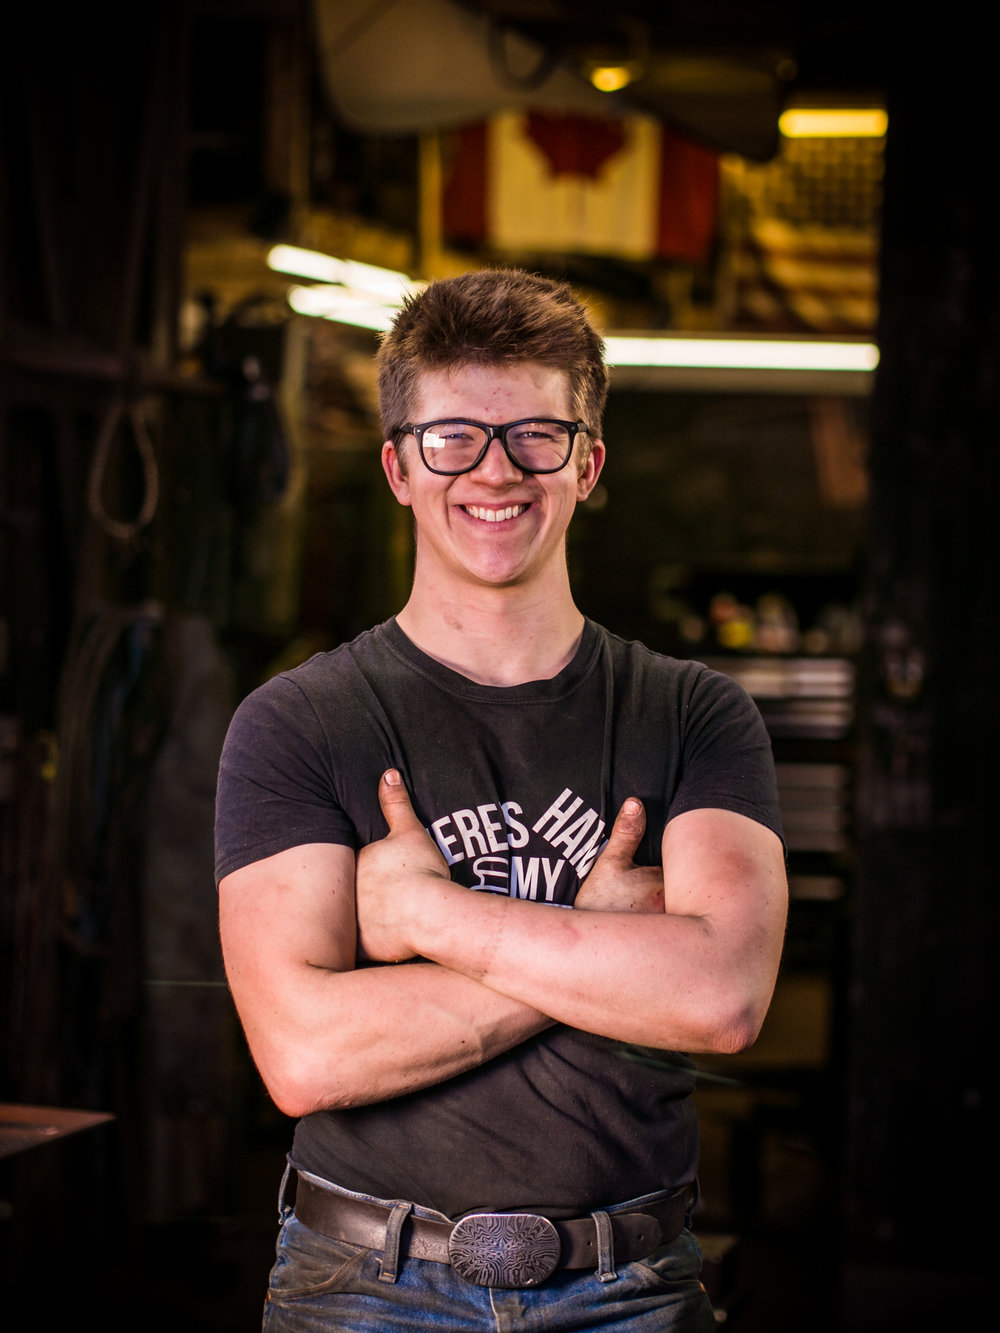 Alec Steele Blacksmith Youtuber Front Profile